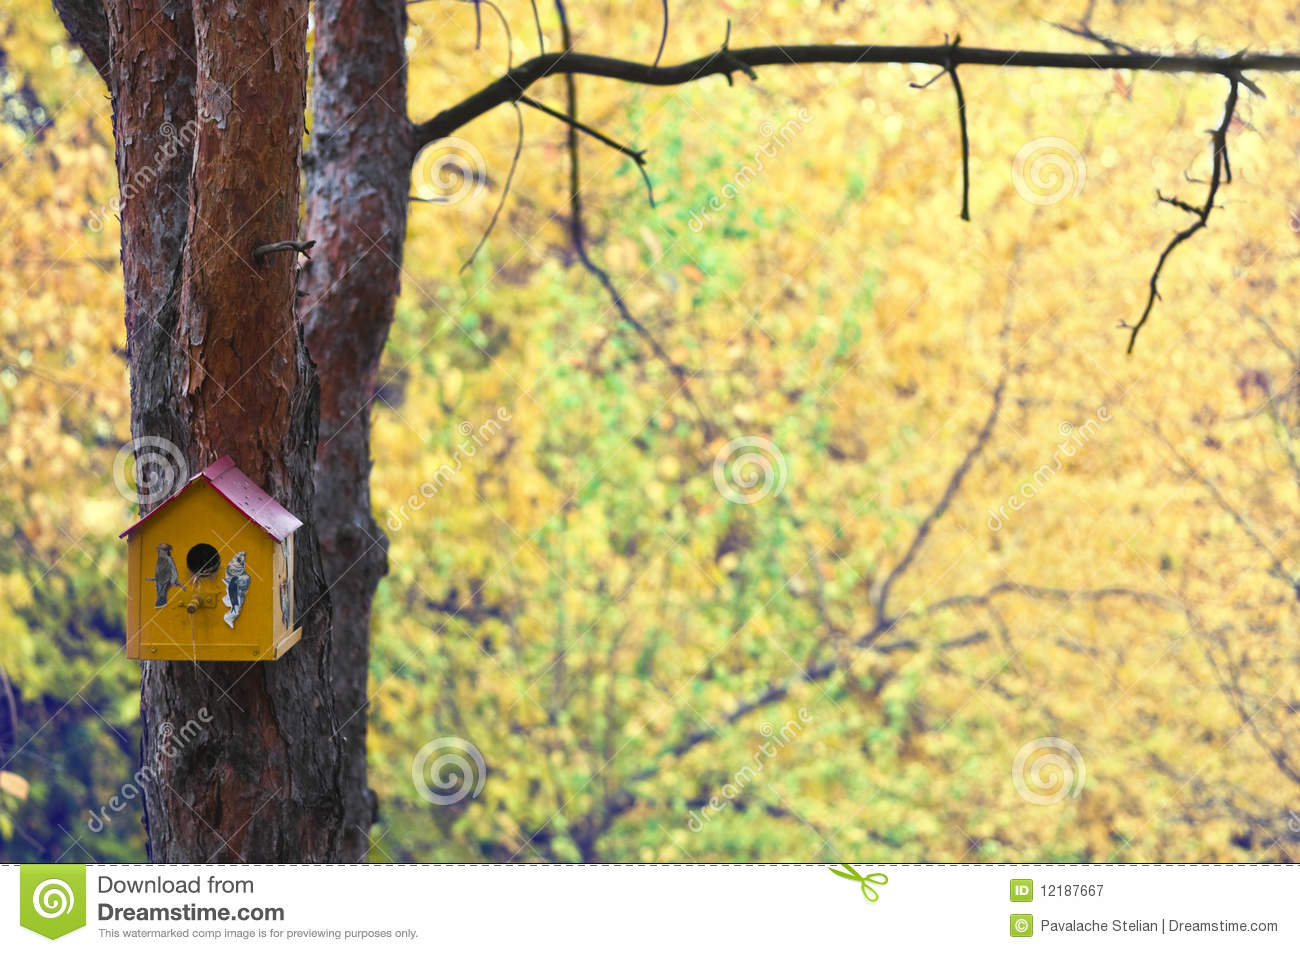 maison d 39 oiseau sur l 39 arbre en automne image stock image du lames for t 12187667. Black Bedroom Furniture Sets. Home Design Ideas